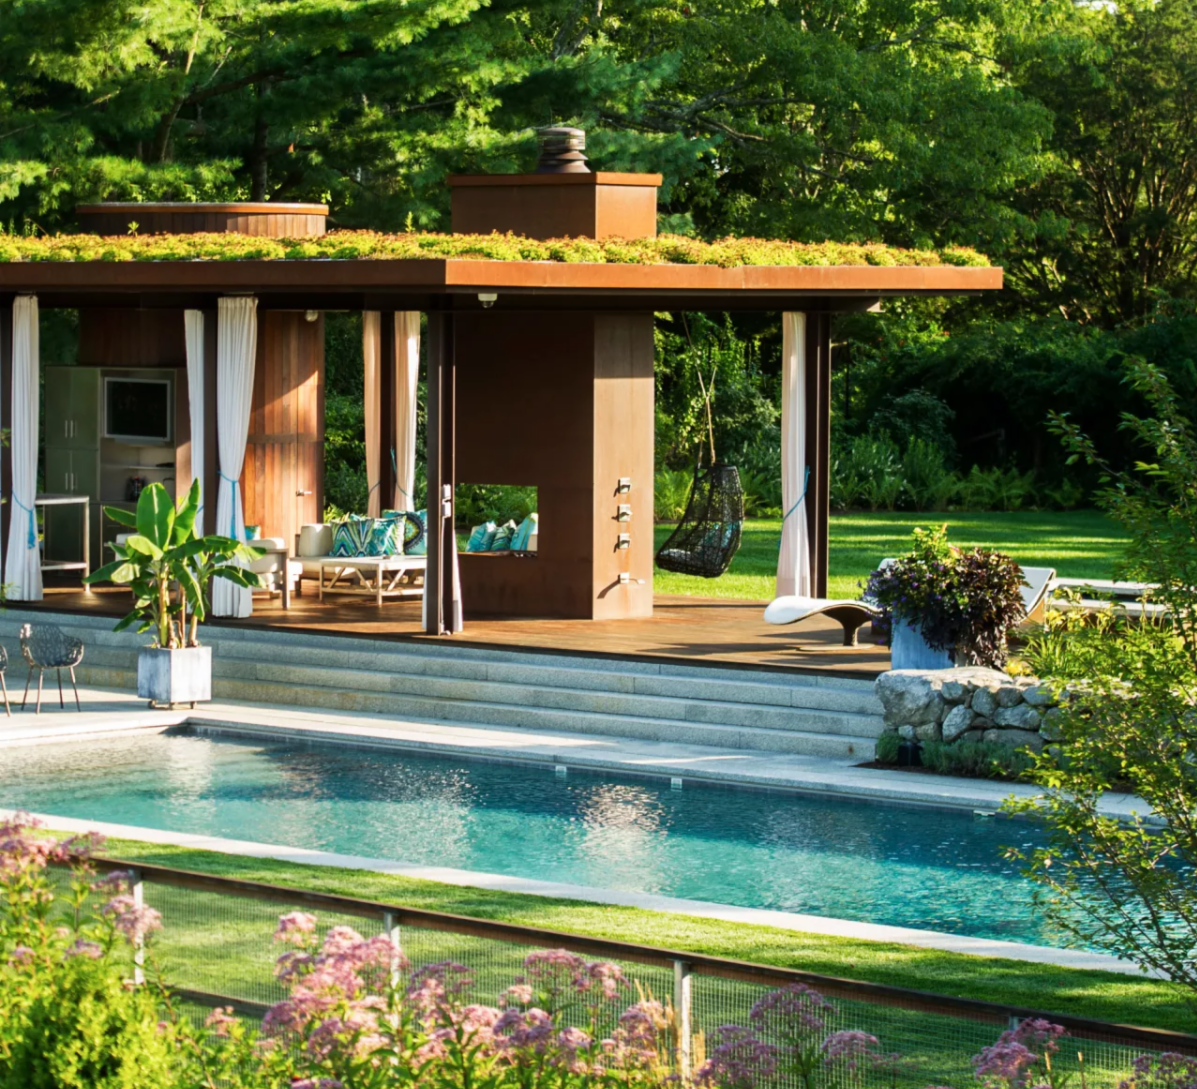 Functional outdoor spaces